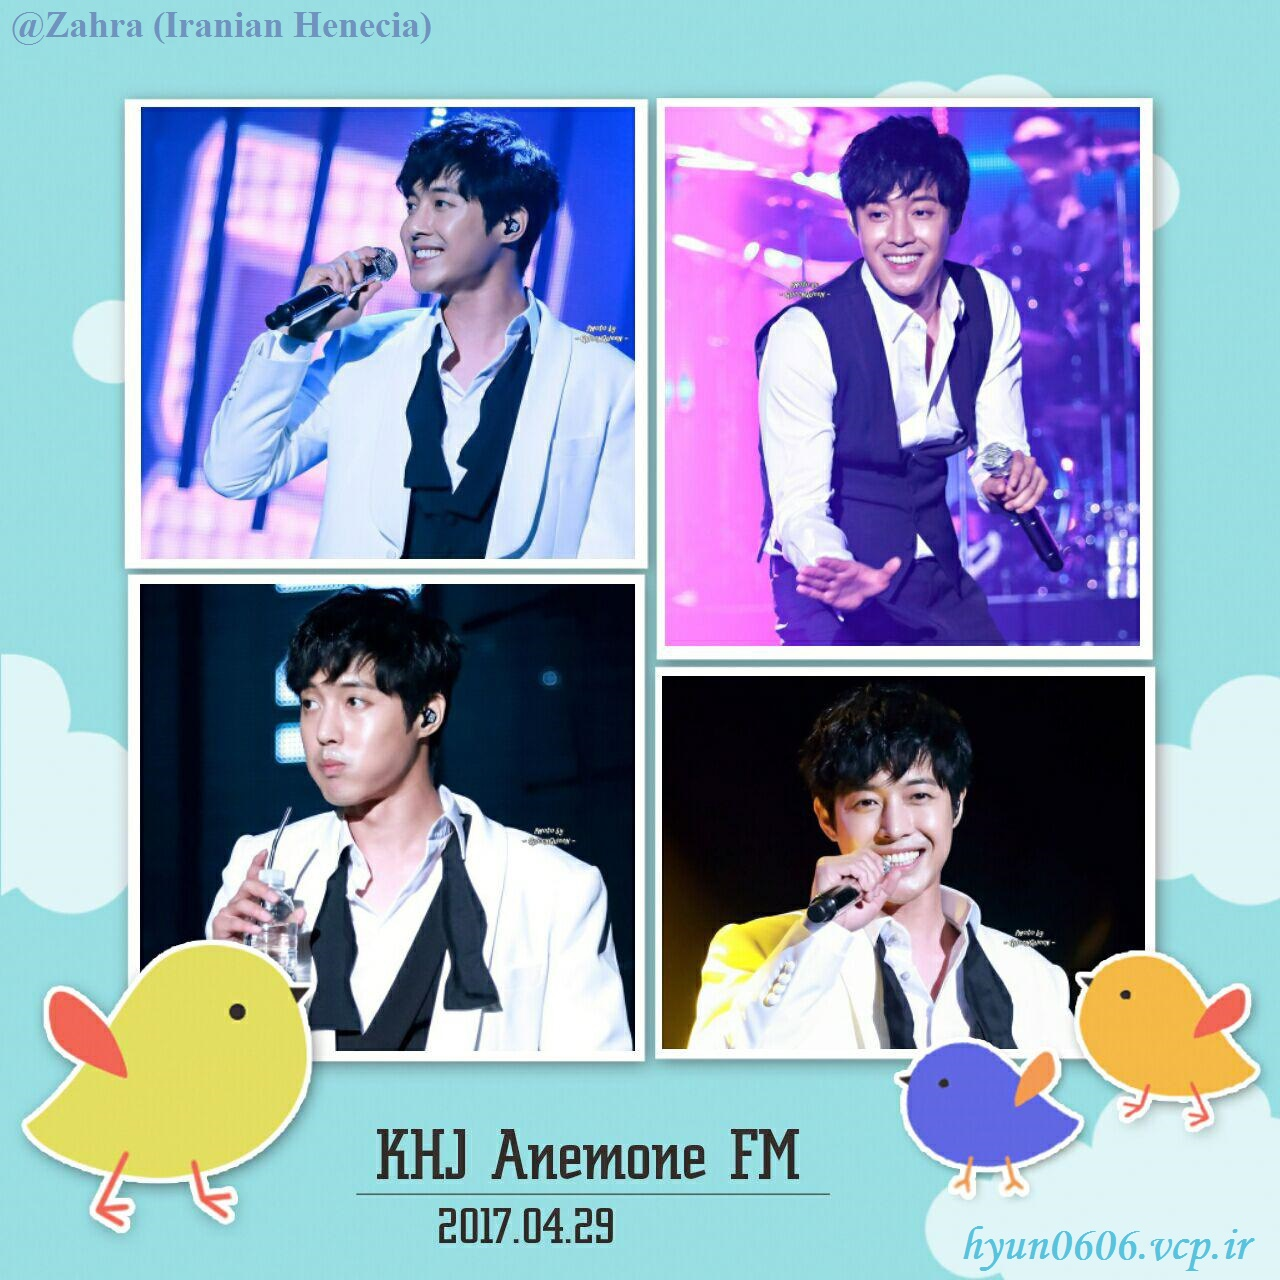 My Fanart from KHJ Anemone 2017 FM in Seoul